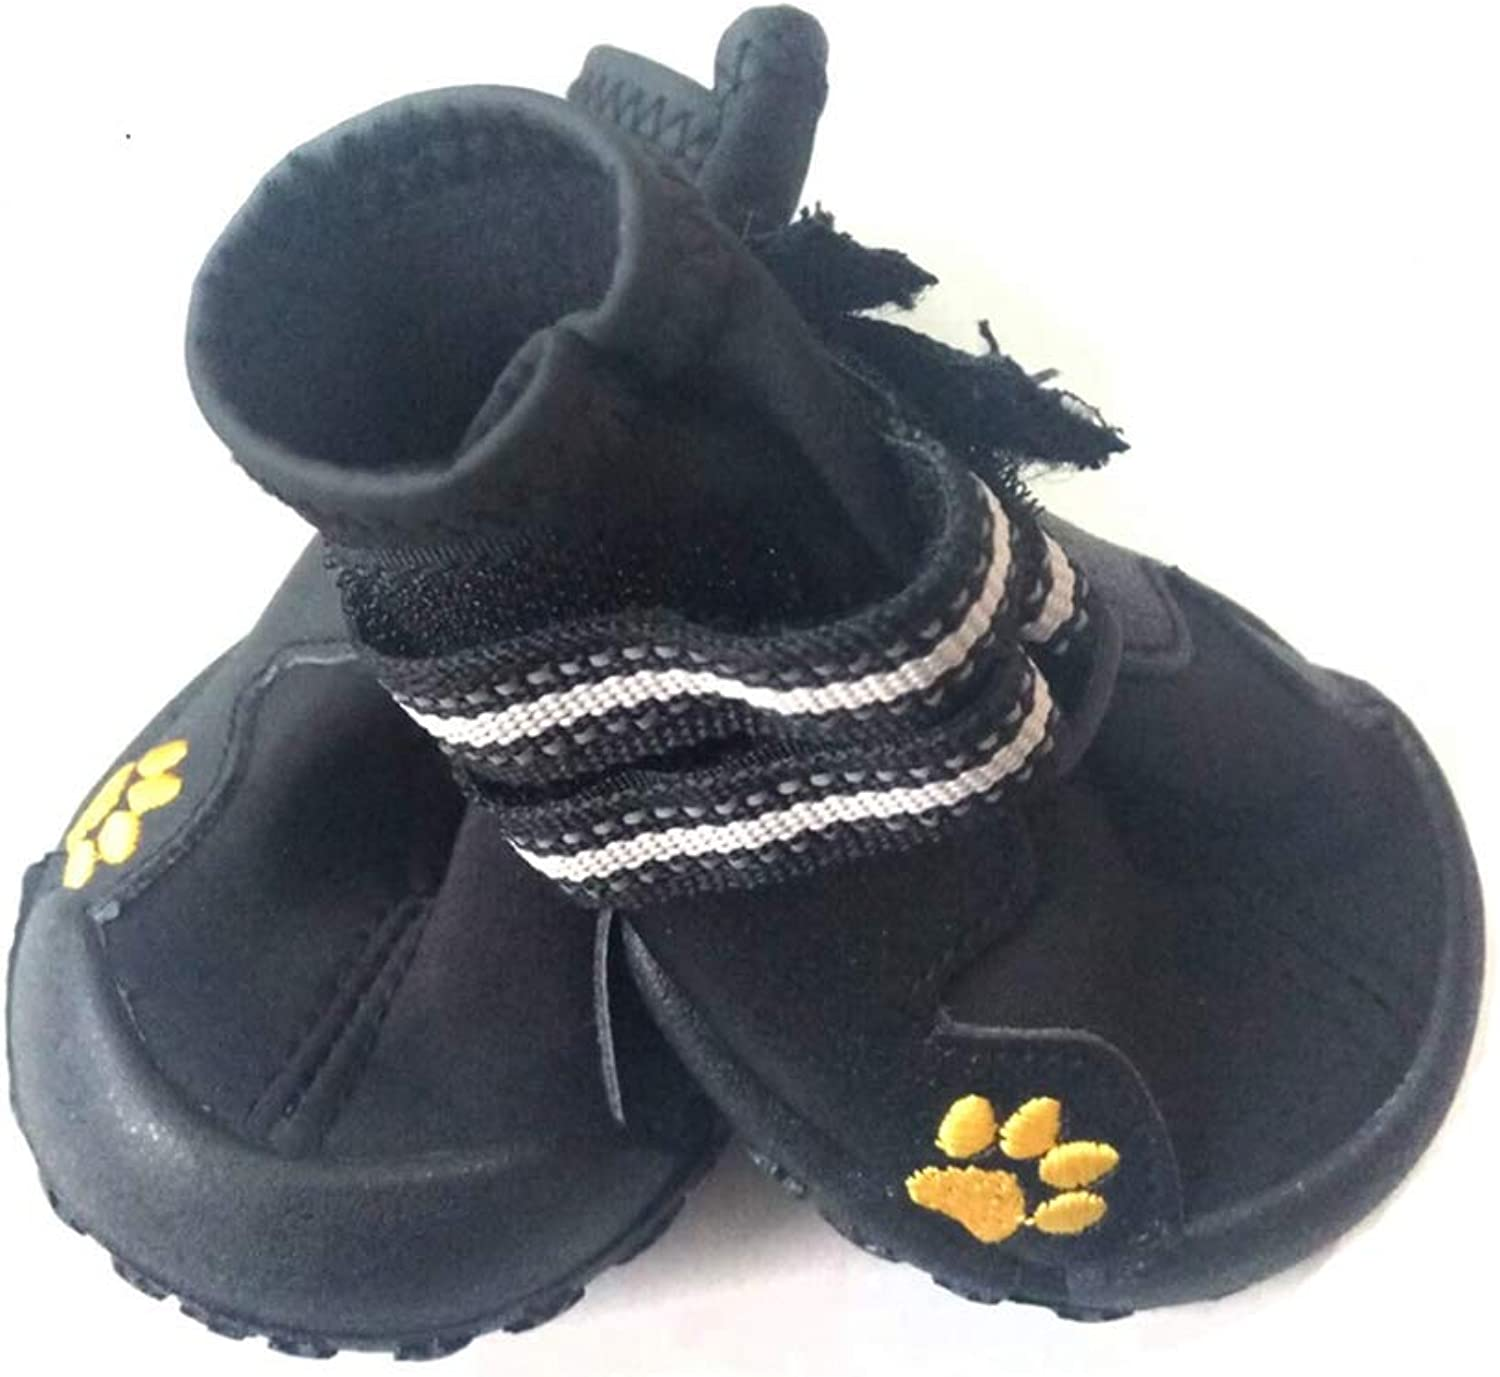 NOMIMAS Dog shoes Waterproof Anti Skid Rubber Sole Outdoor Activity Fashion Portable Pet Dog Running shoes